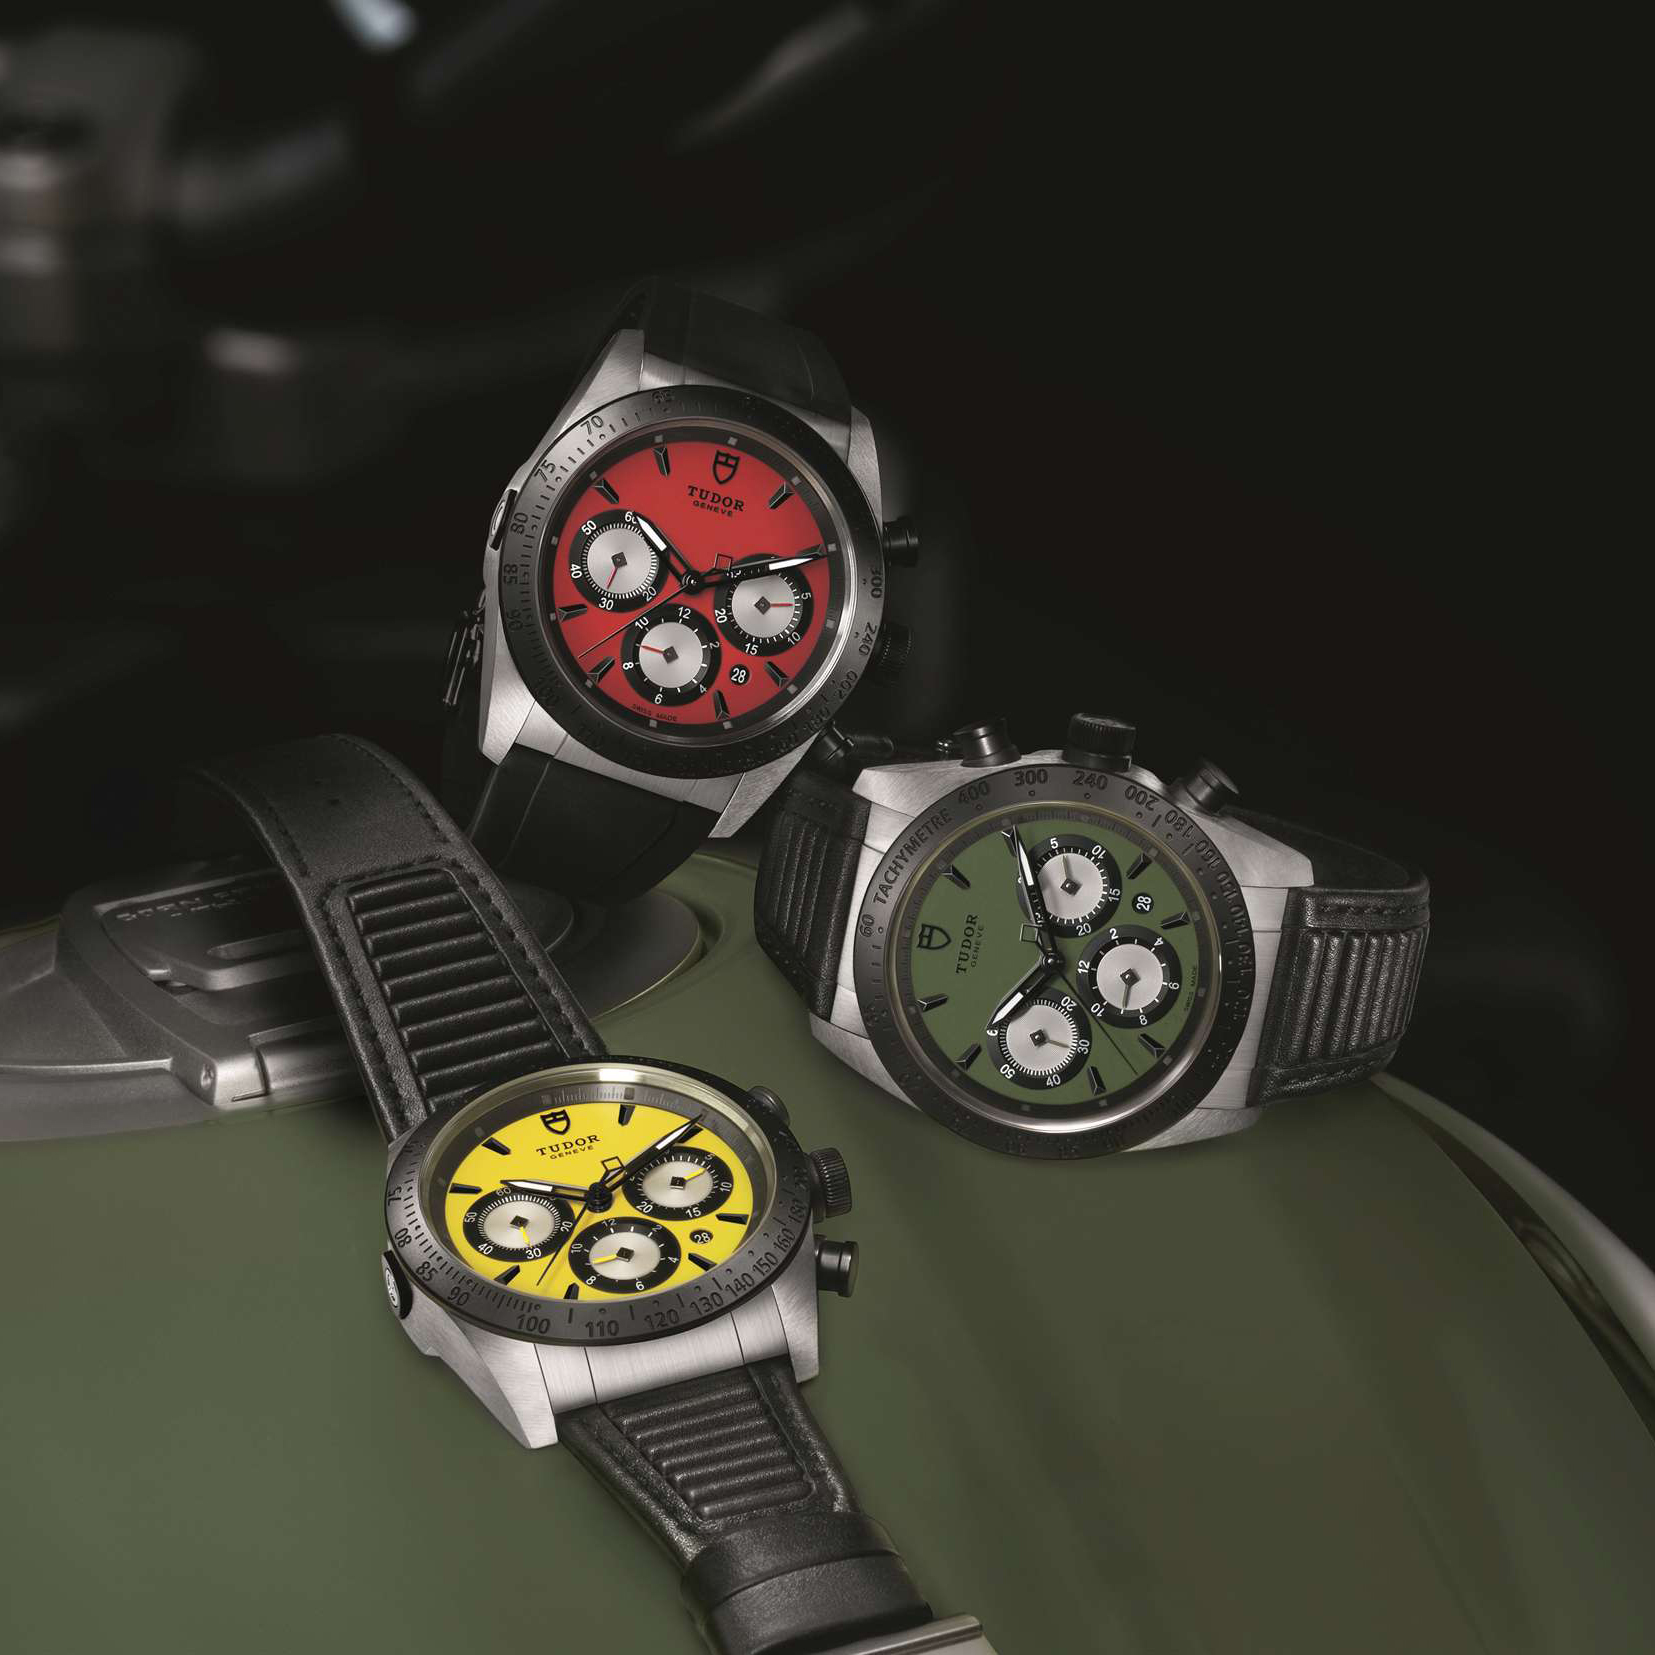 The Tudor Fastrider's displayed in all three colour variations. Which is your favourite?